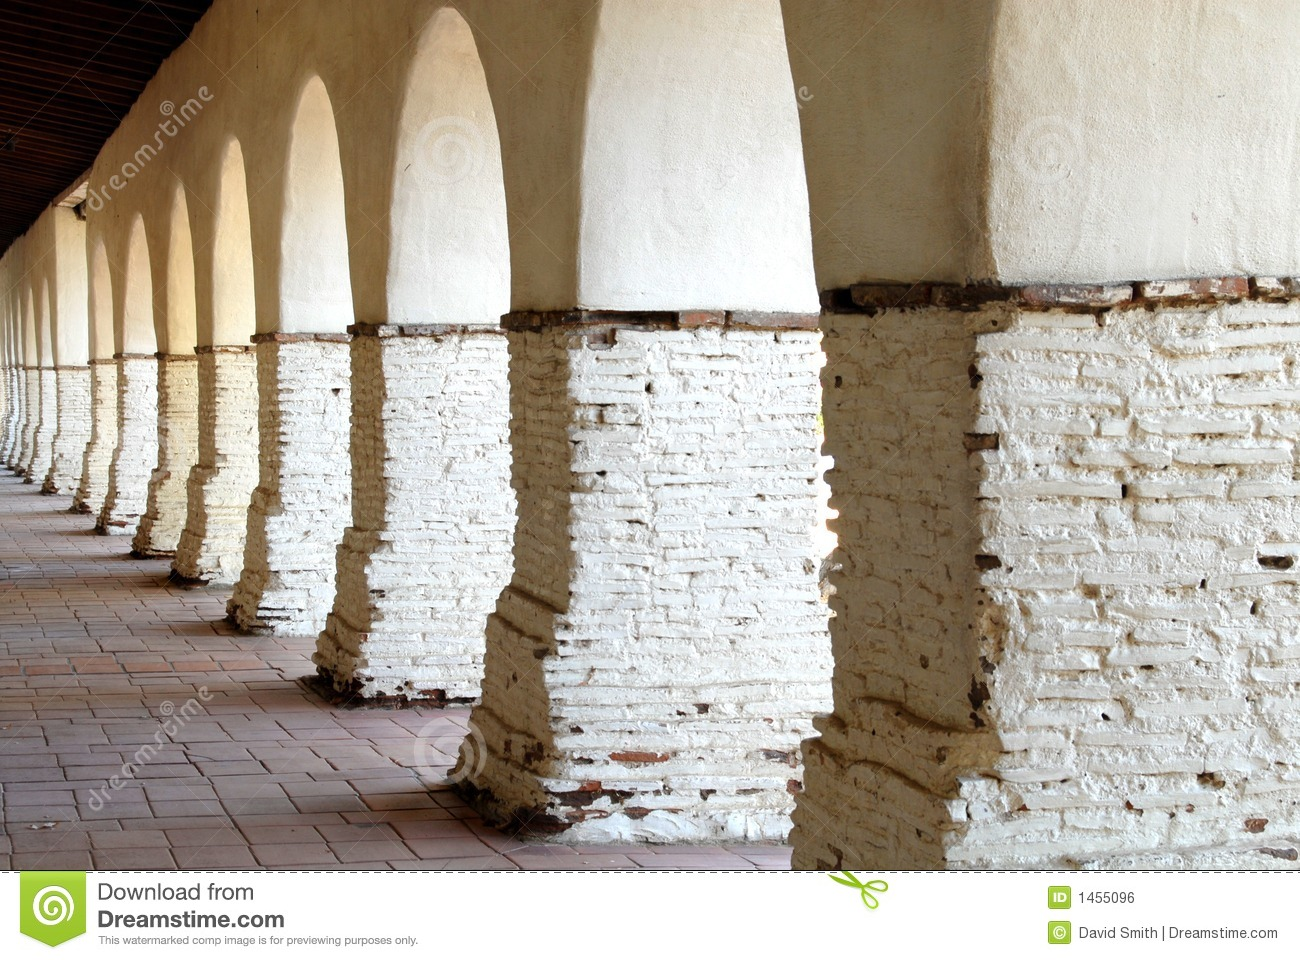 The Arches at the San Juan Bautista Mission